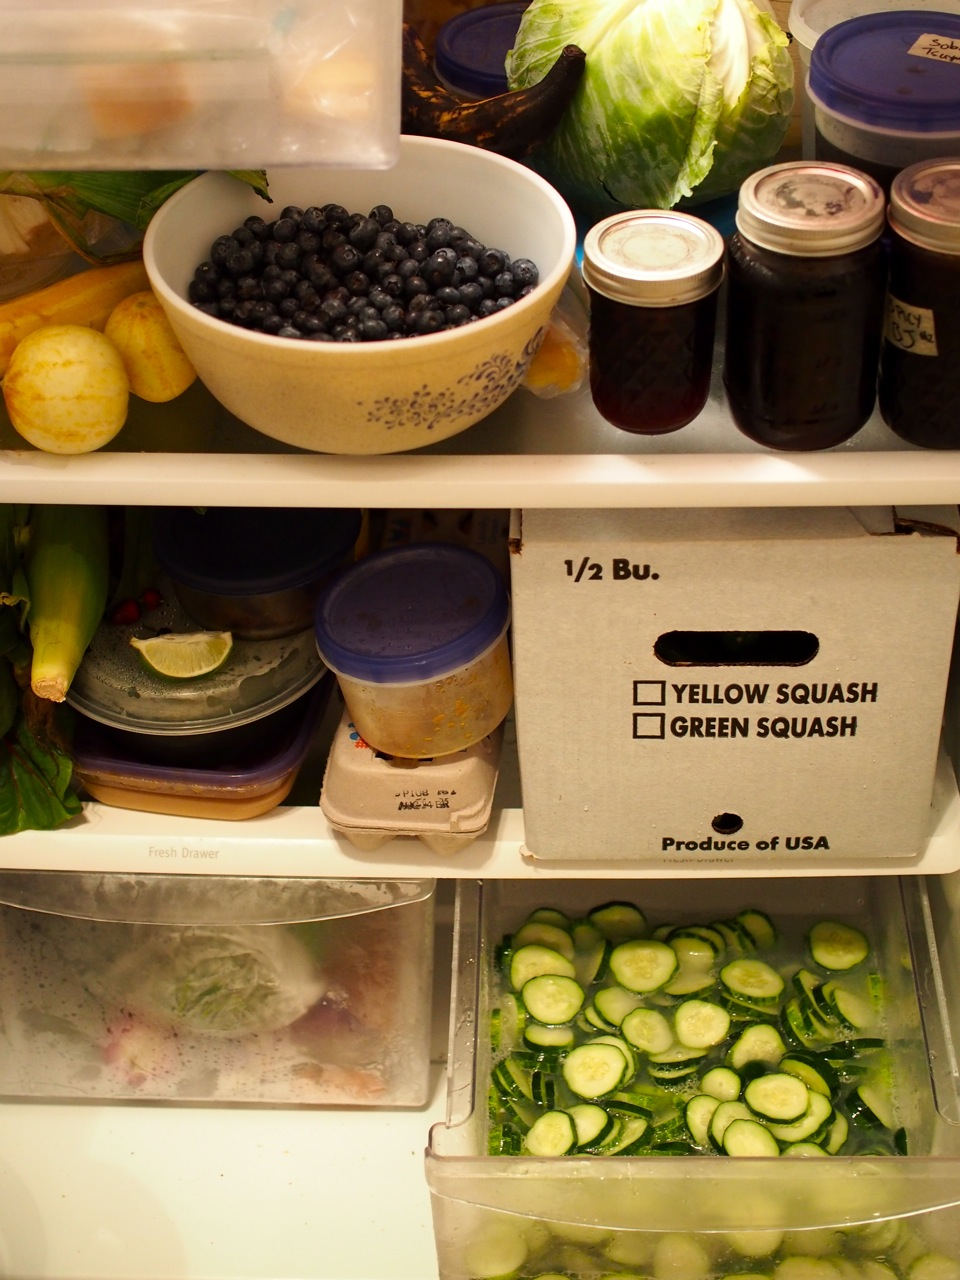 Pickling places heavy demands on one's fridge